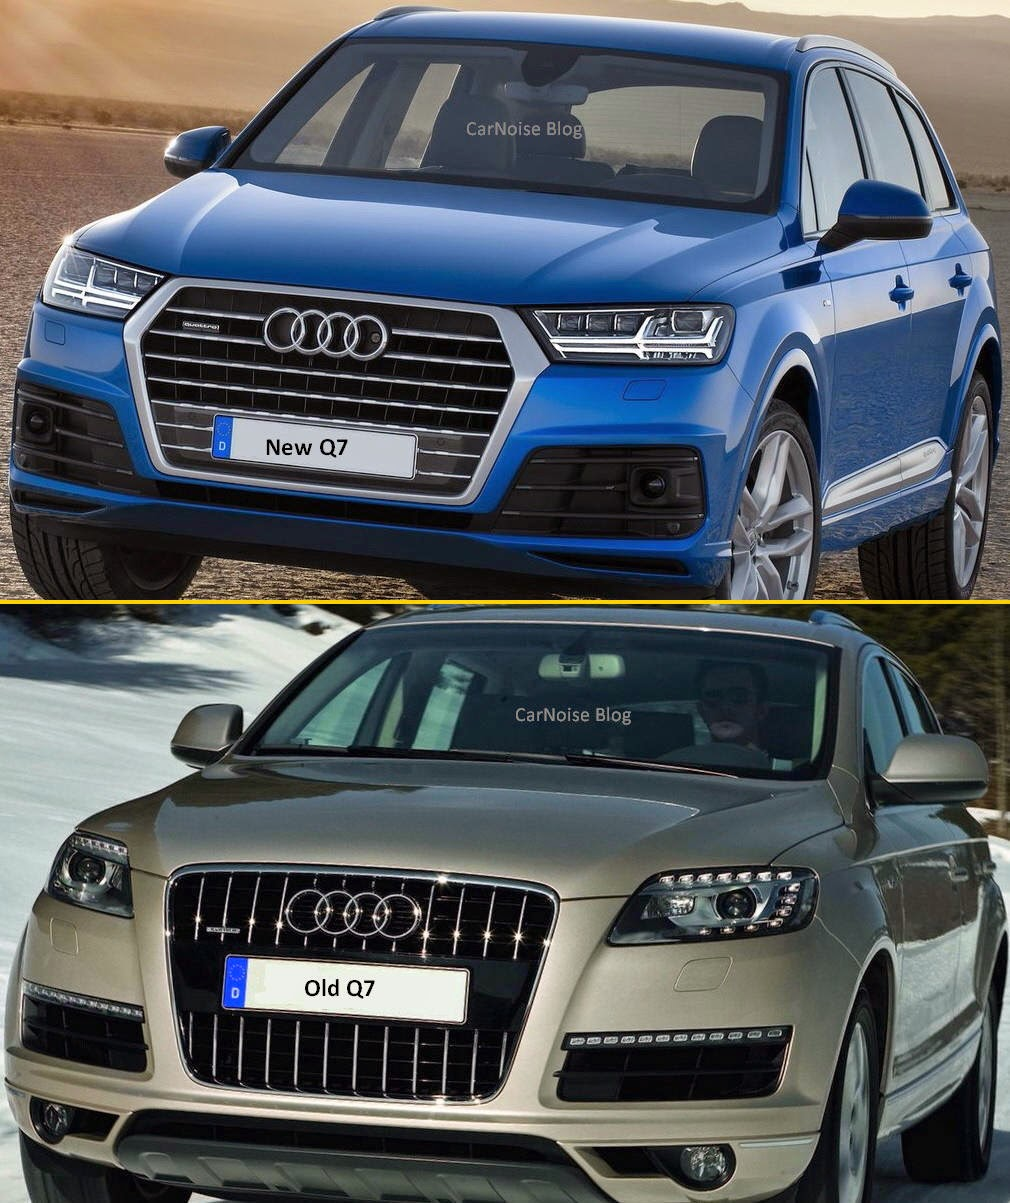 Comparison: Audi Q7 New Vs Old - How Different